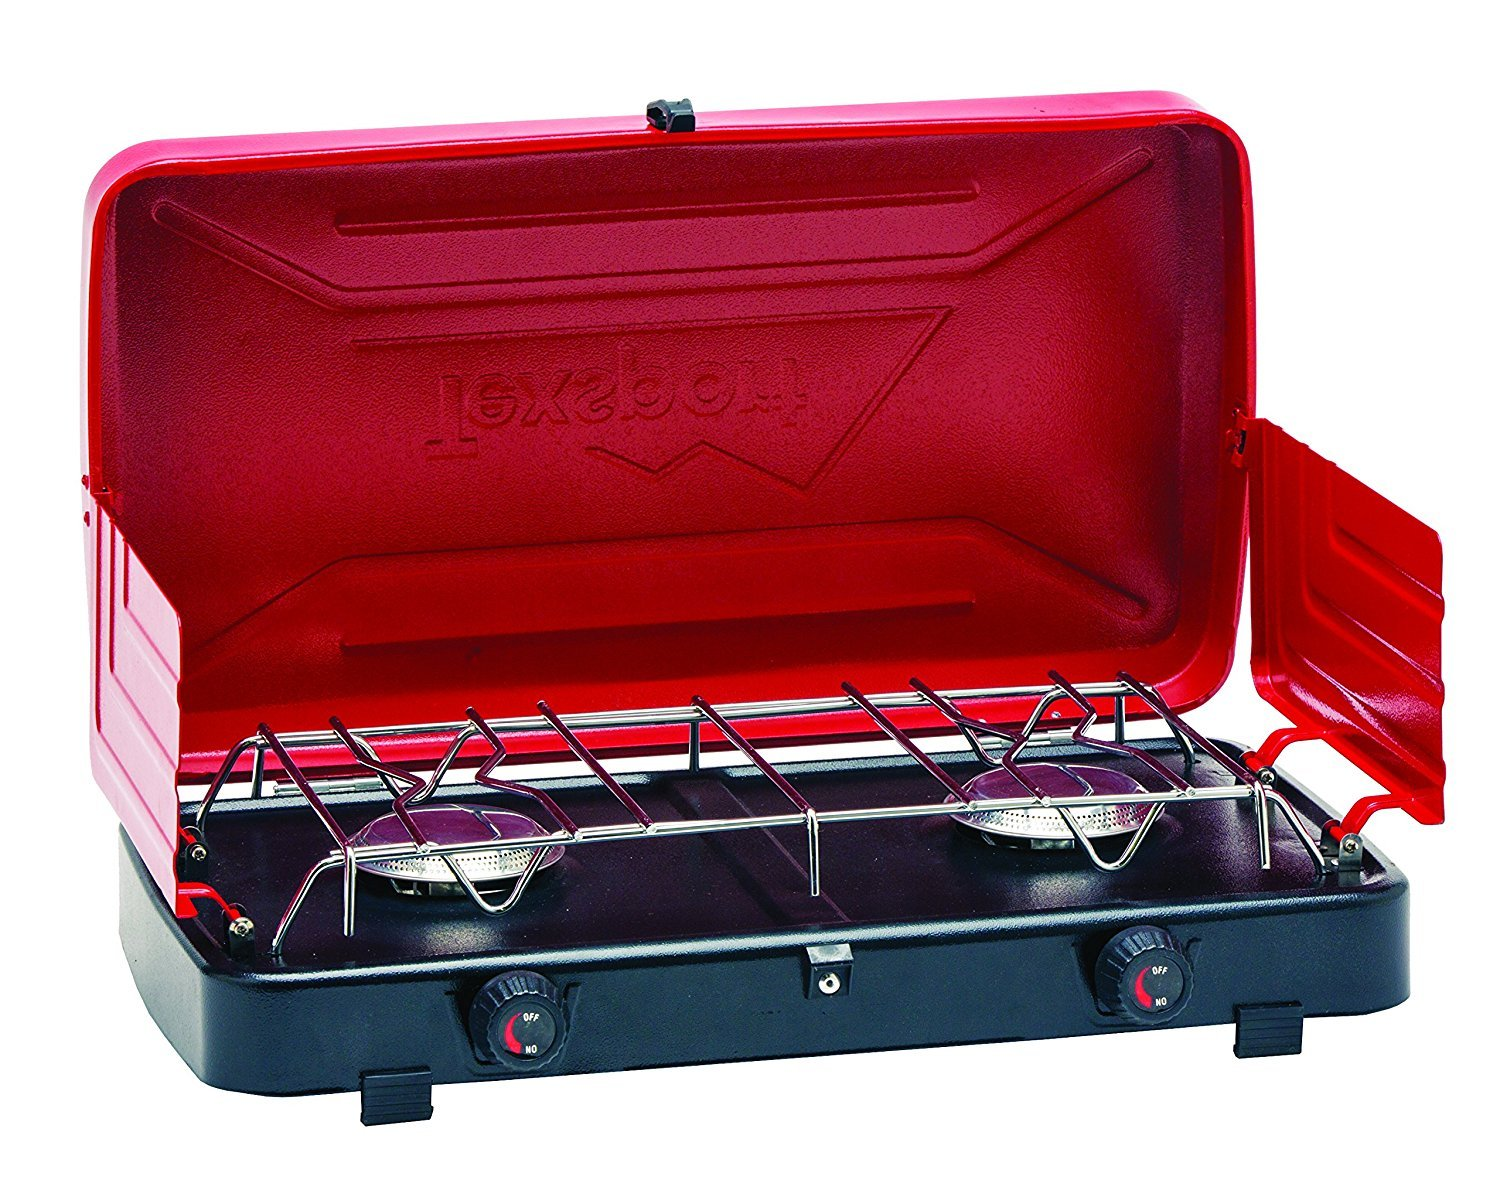 8b04e3fbd39 Texsport 2 Burner Stove (Gently Used) - Outdoors Geek